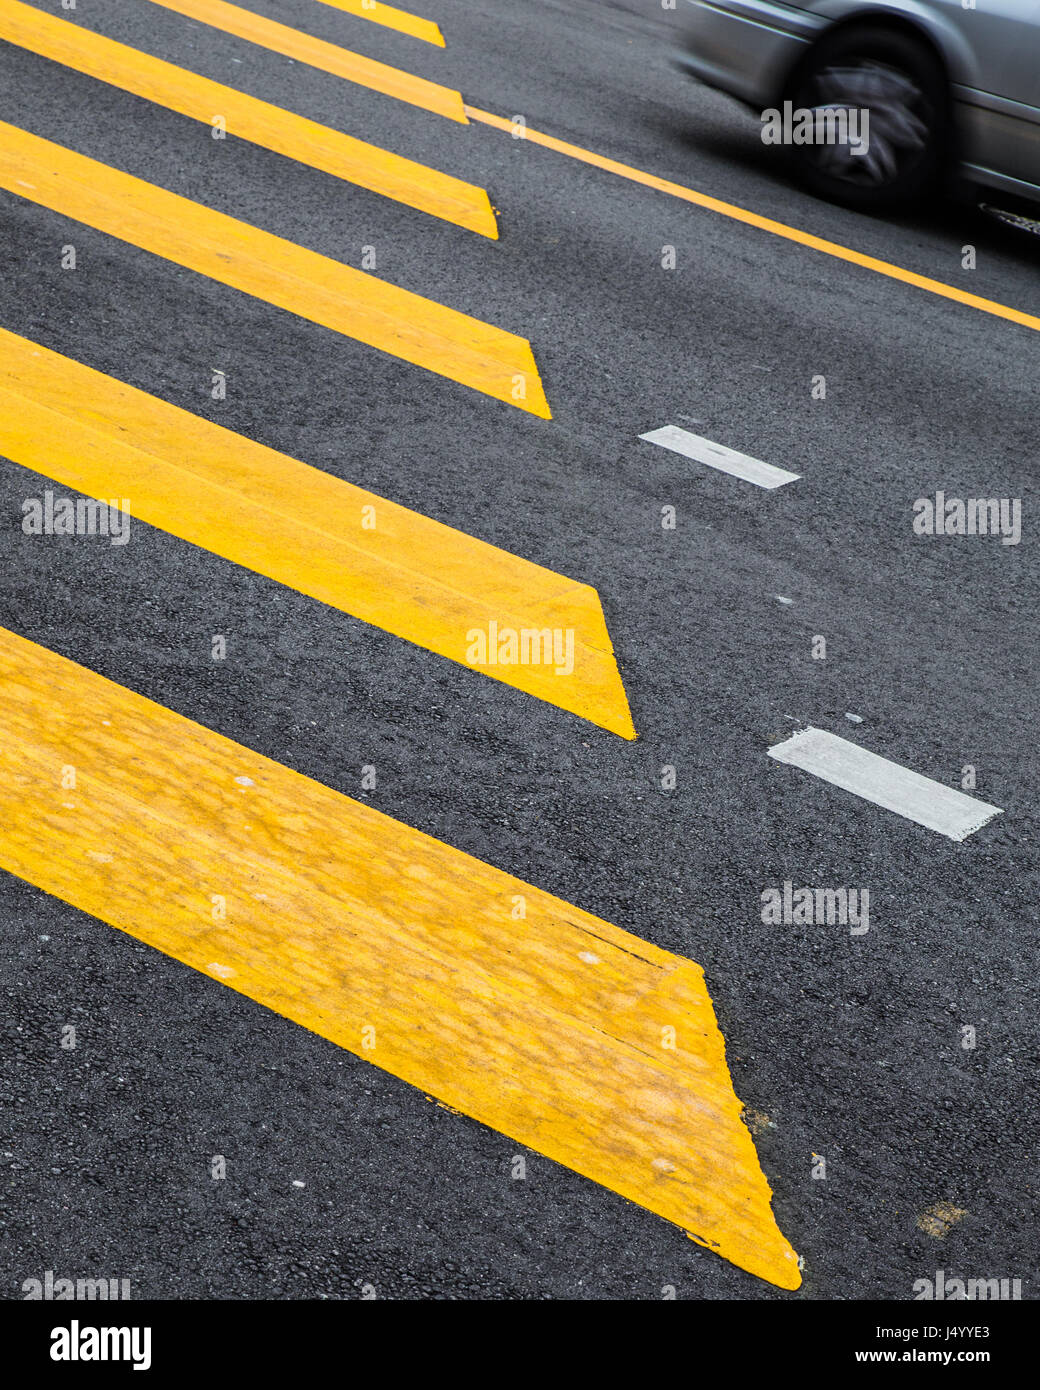 Yellow painted crosswalk road line markings with moving car in background - Stock Image